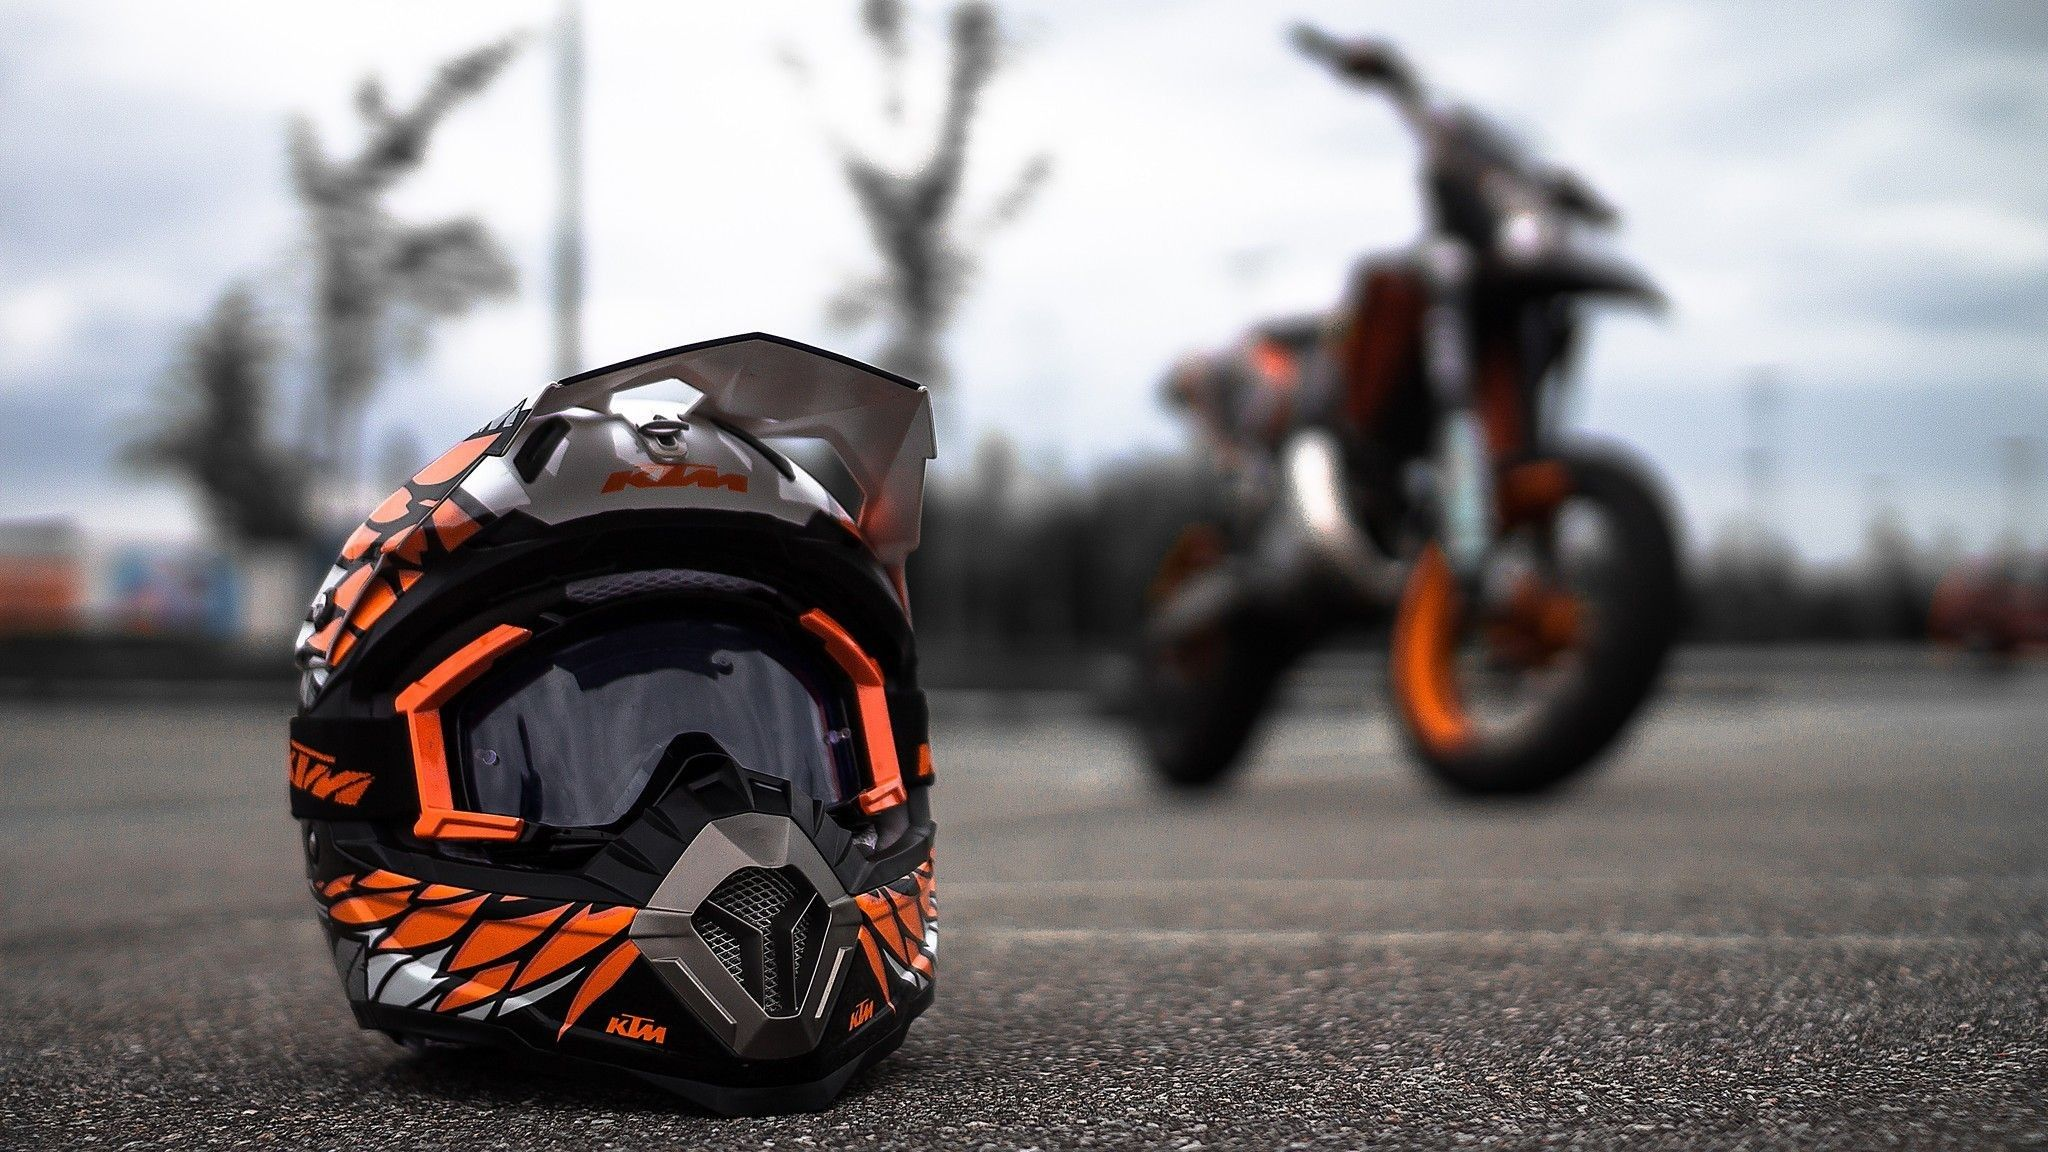 Ktm Wallpapers Top Free Ktm Backgrounds Wallpaperaccess